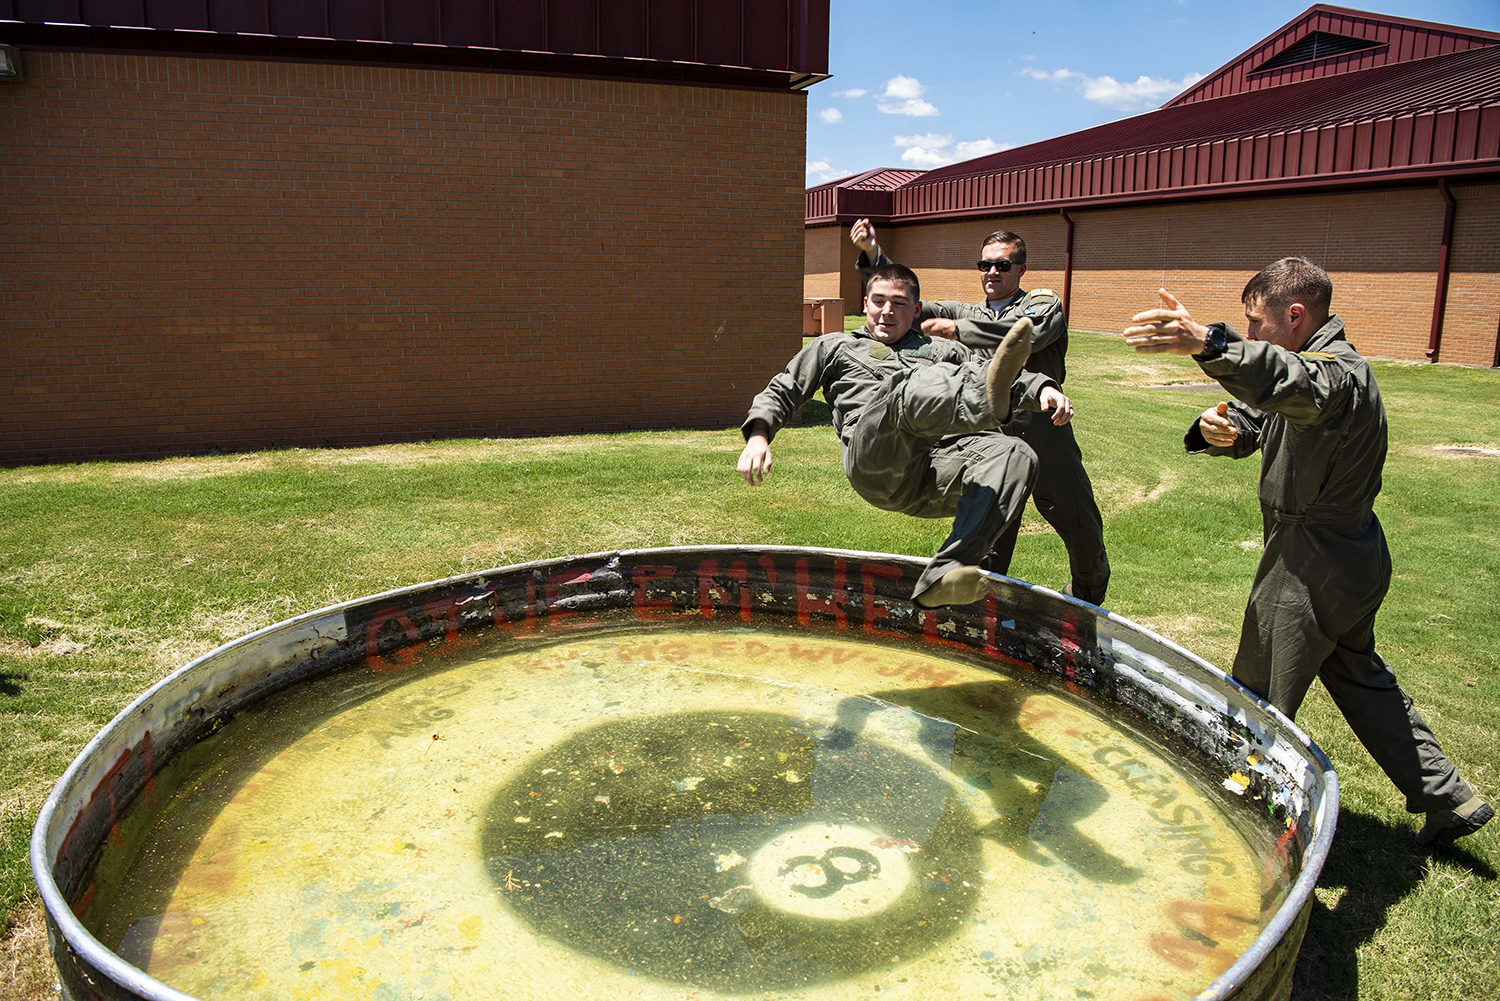 2nd Lt. Corey Persons is thrown into a solo tank by fellow student pilots 2nd Lt. Graham McAninich and 2nd Lt. Kyle Blanchette on July 15, 2019, at Vance Air Force Base, Okla. It is Air Force tradition to be thrown into the solo tank upon completion of a student pilot's first solo flight. (Senior Airman Taylor Crul/Air Force)